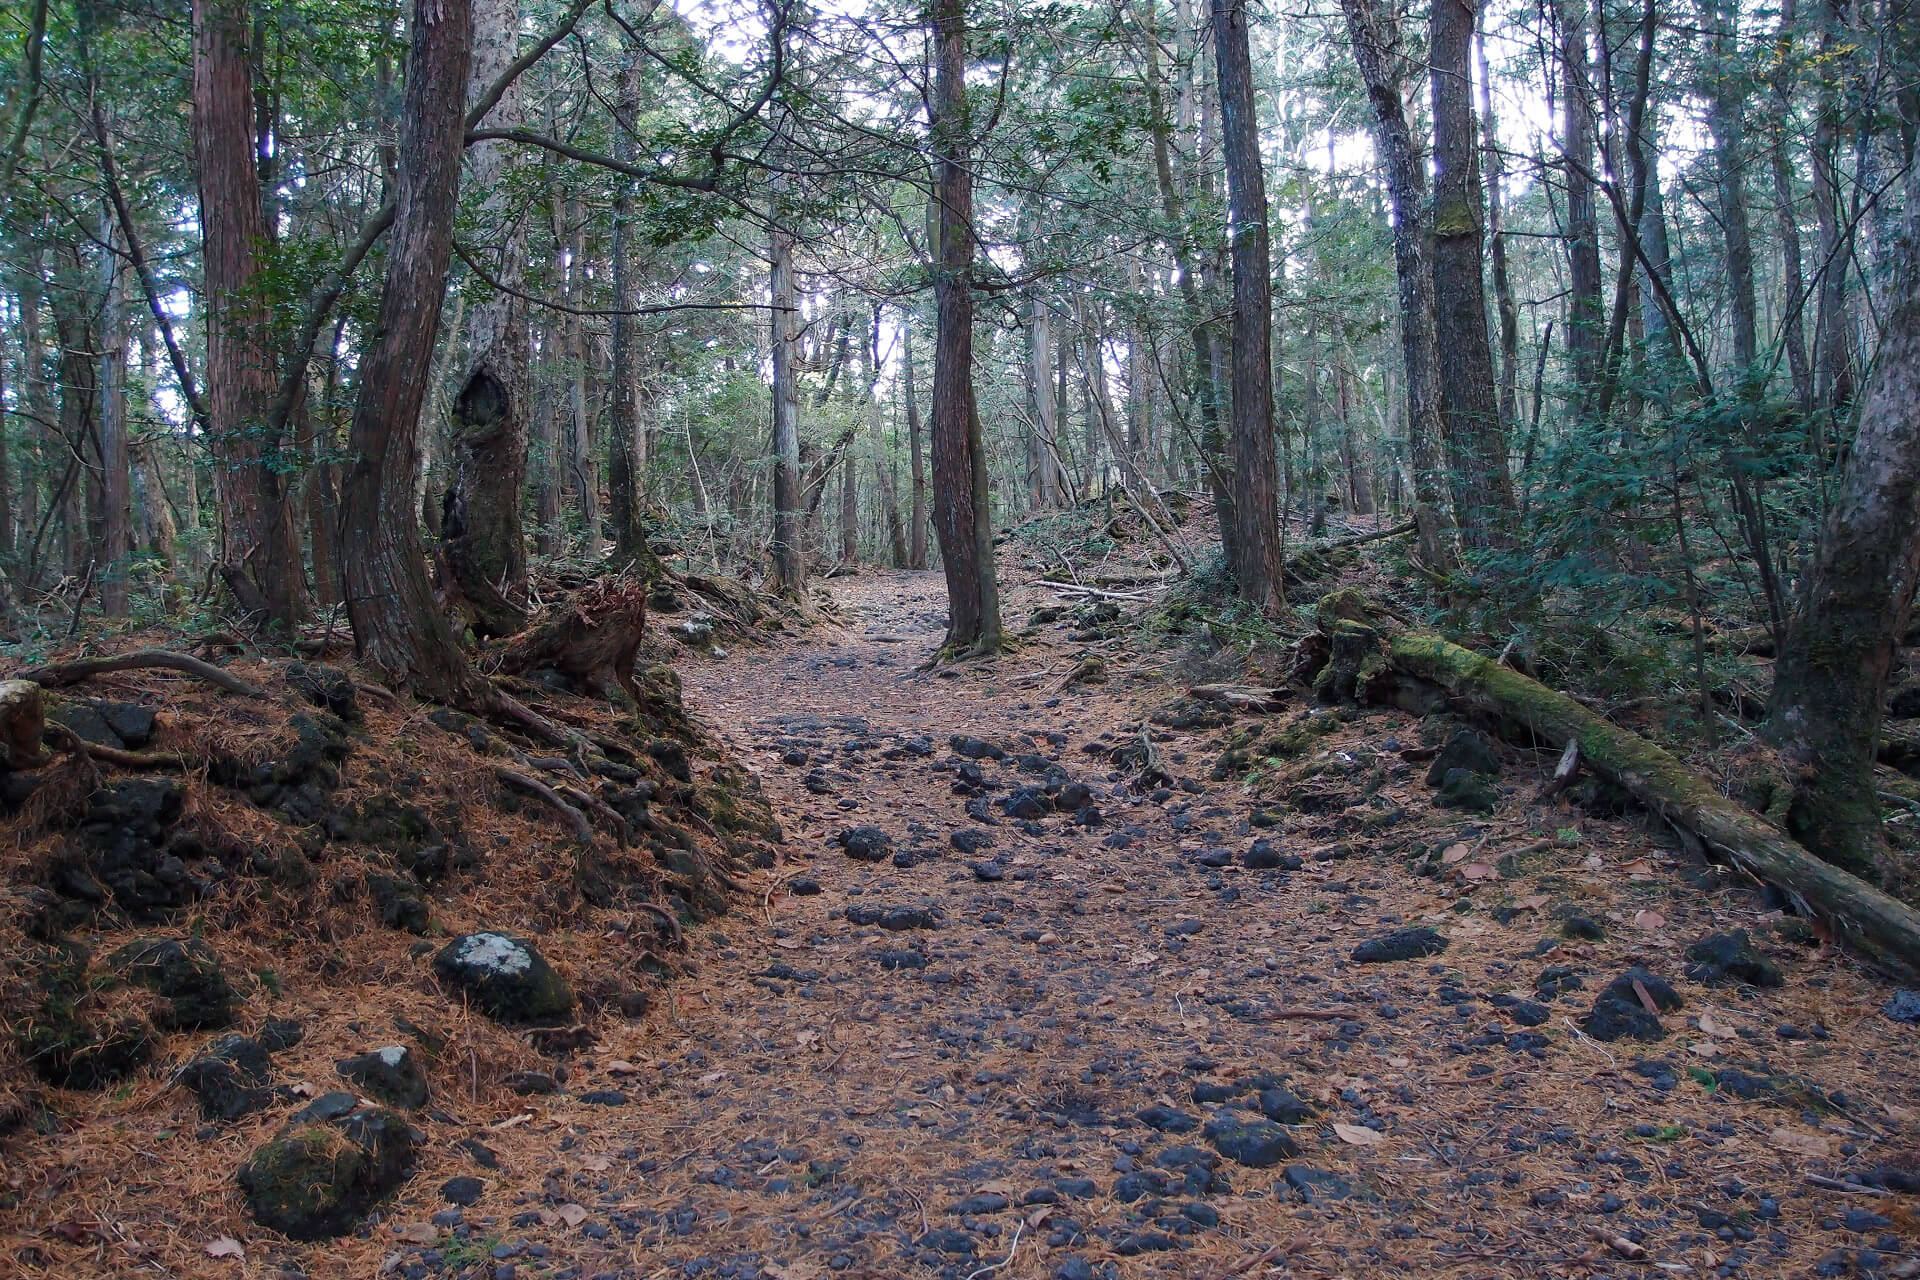 Aokigahara (or Suicide Forest), Japan